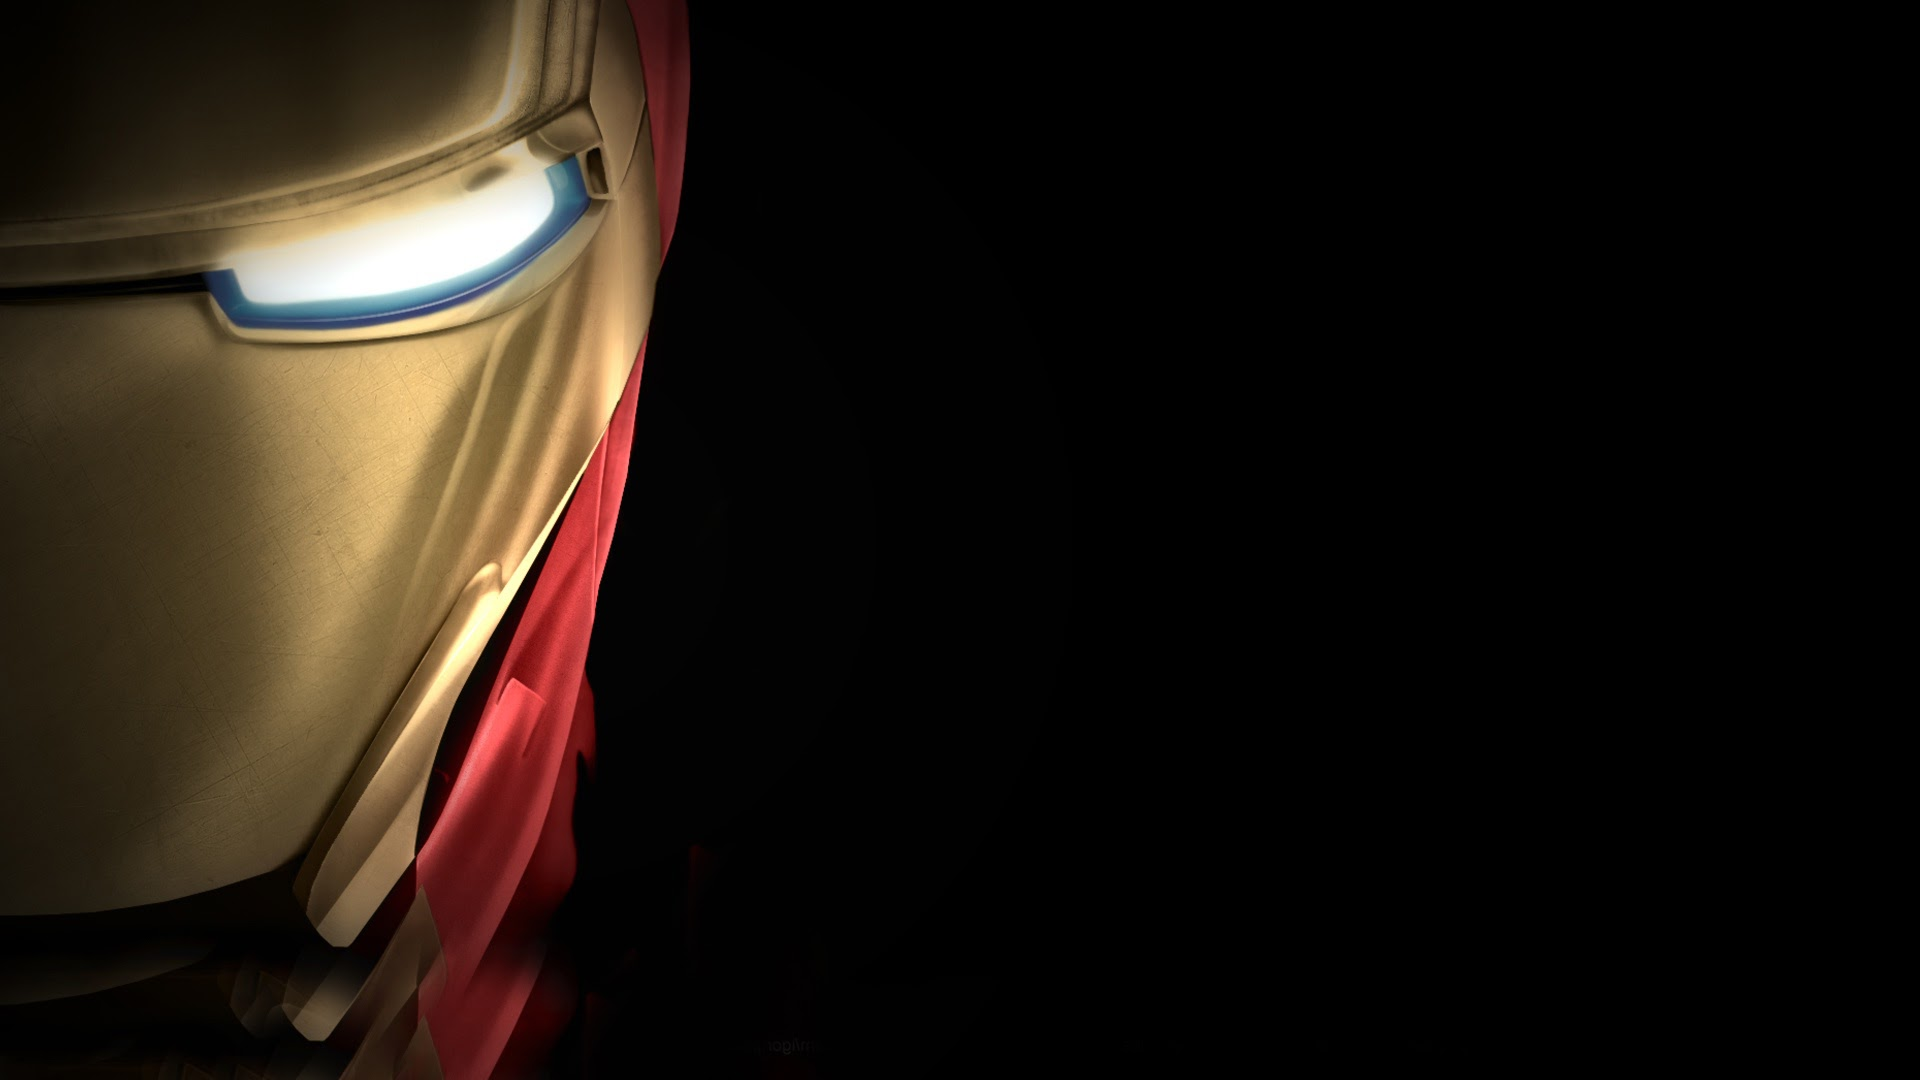 Iron Man Background Wallpapers